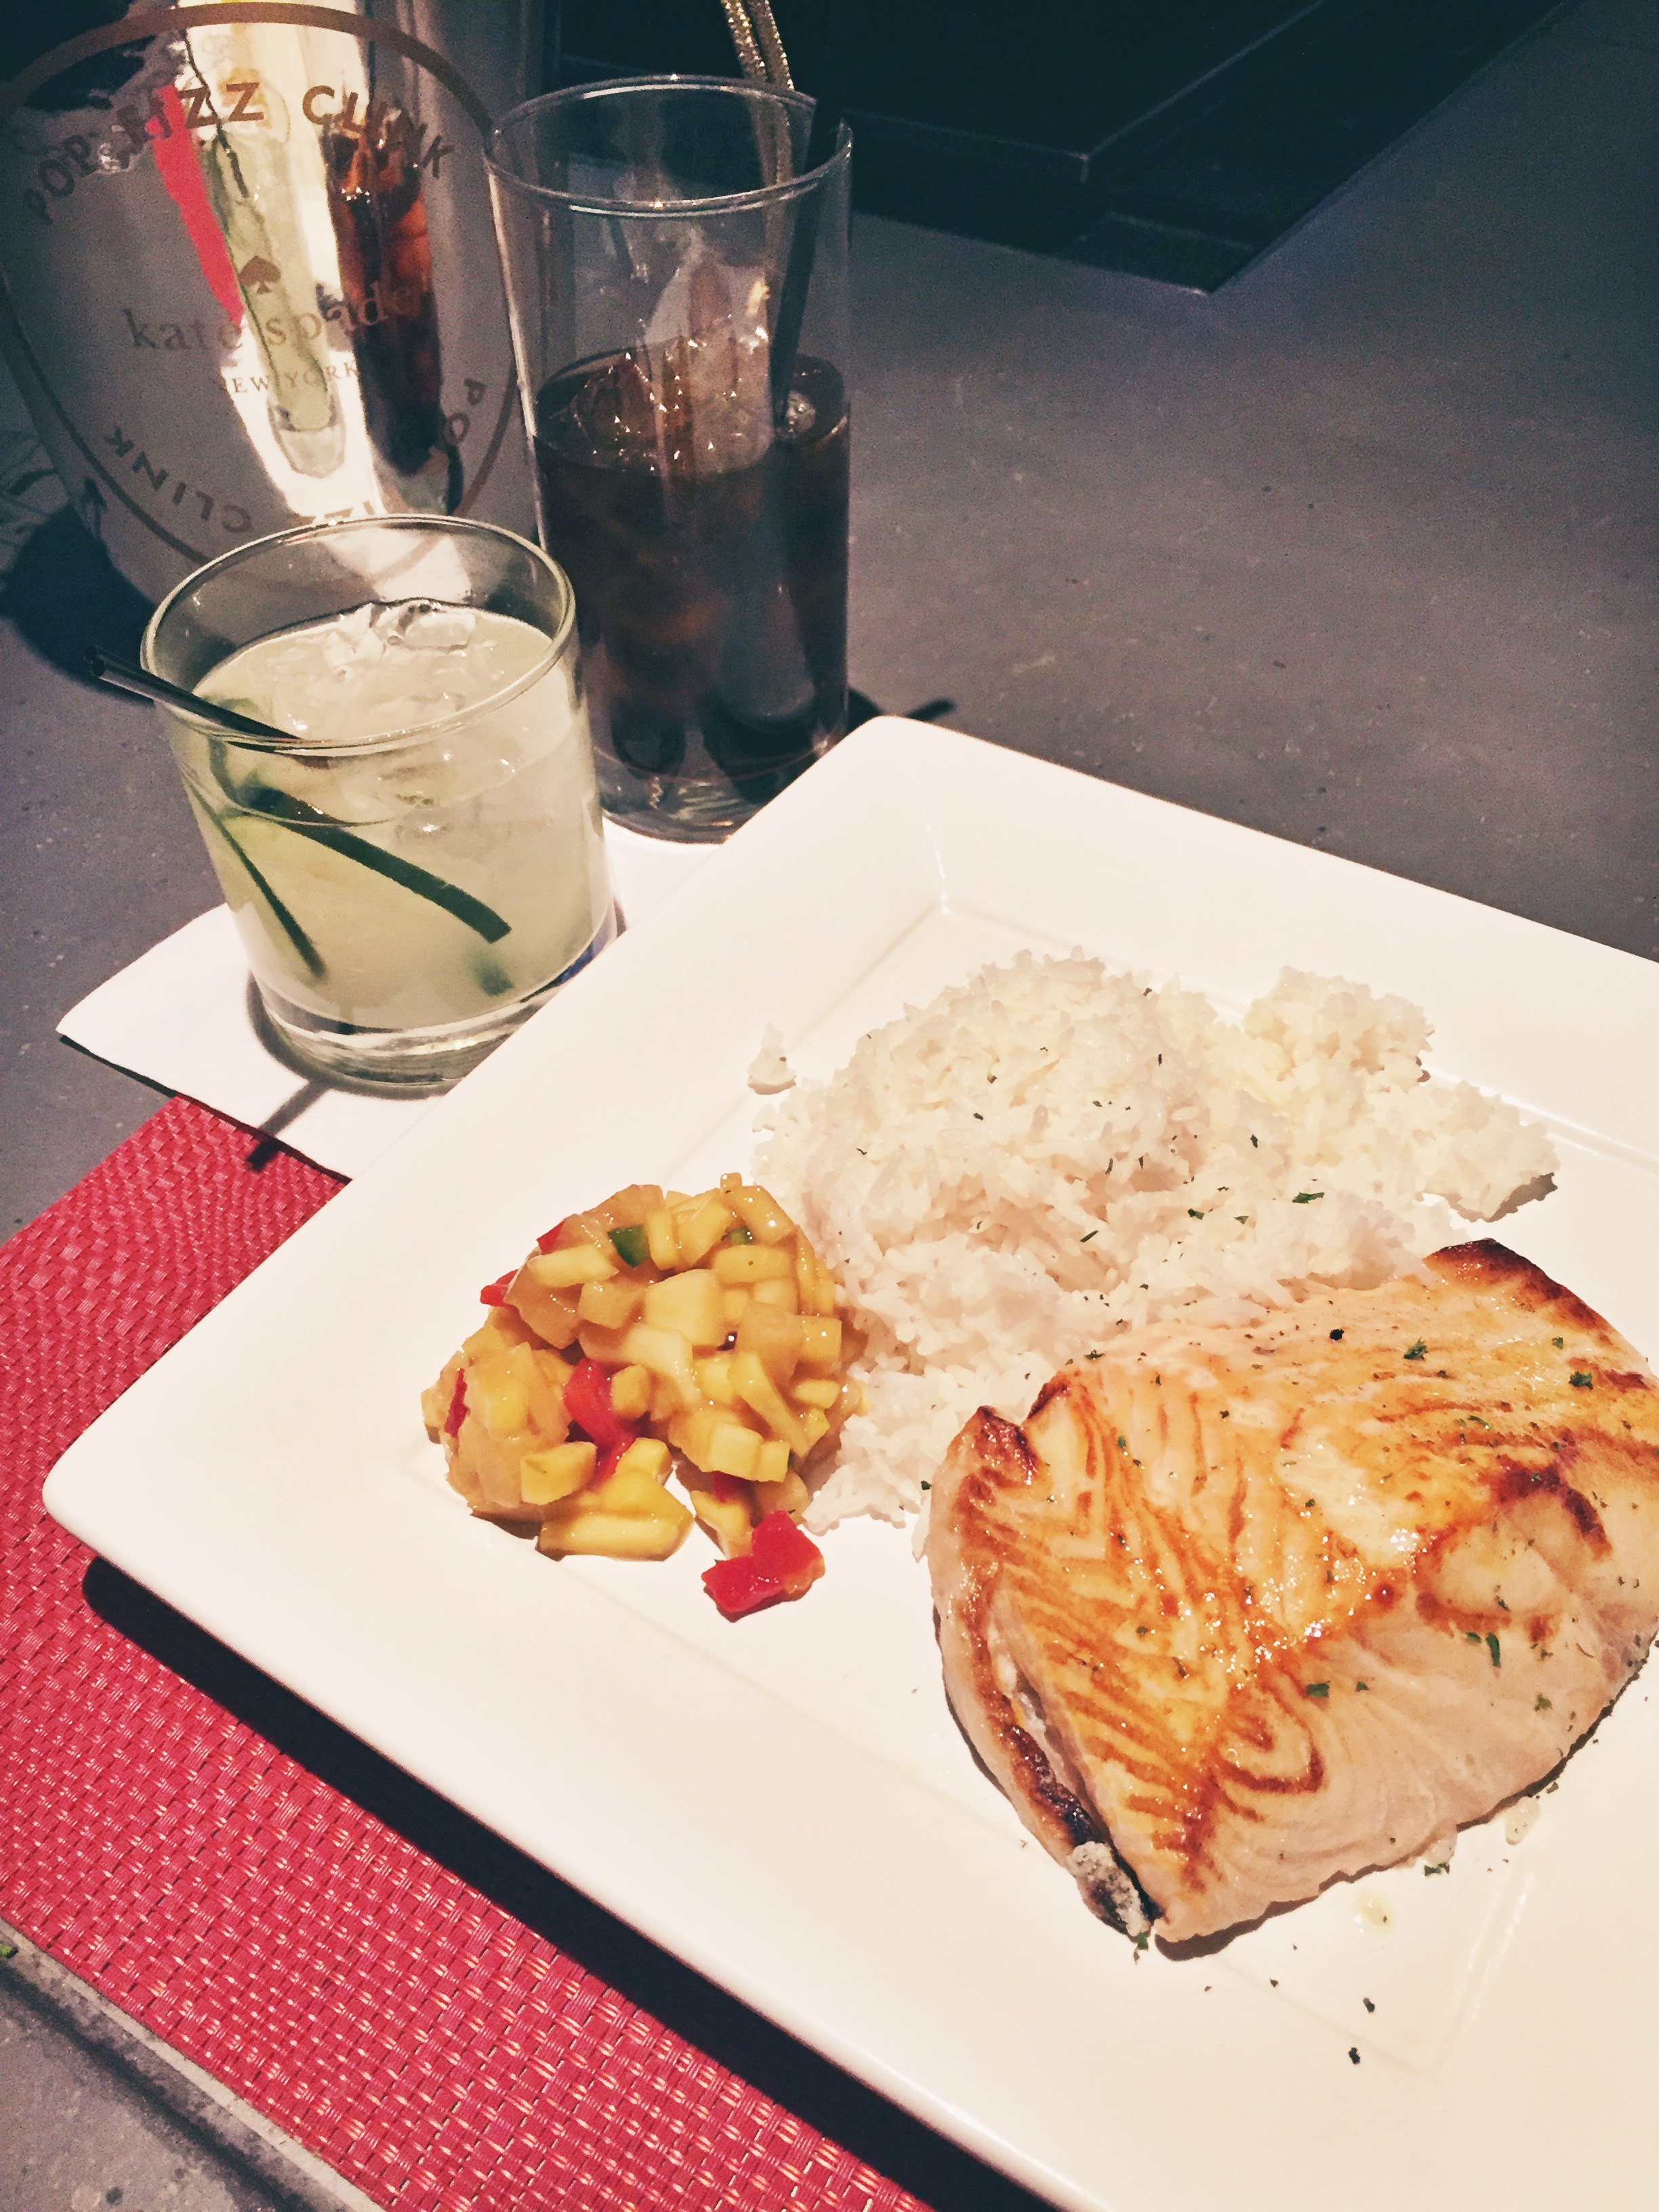 gin and salmon might be the new trend, but Diet Coke never goes out of style...